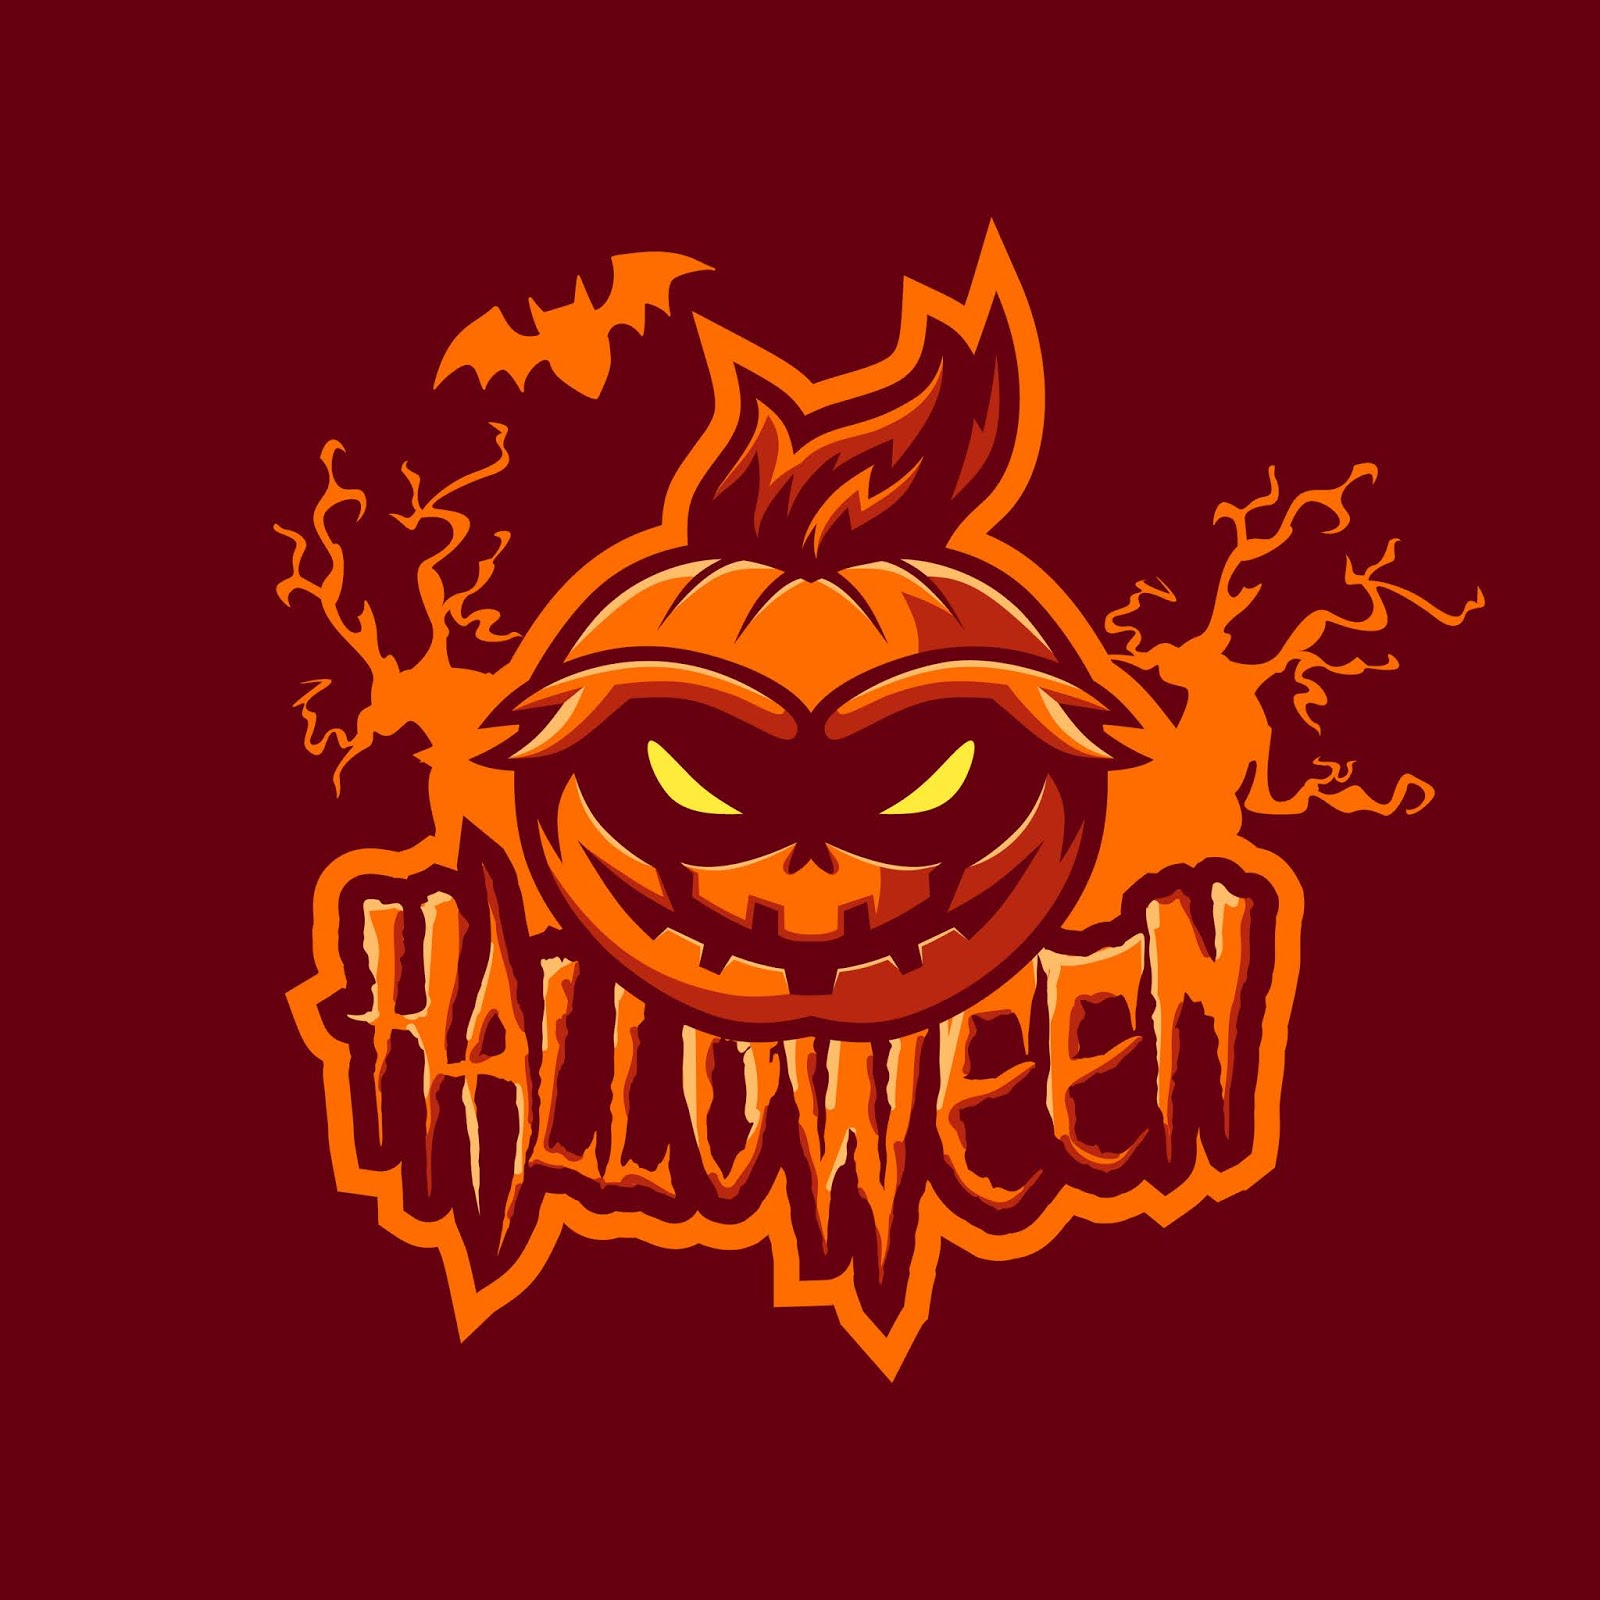 Halloween Mascot Logo Premium Free Download Vector CDR, AI, EPS and PNG Formats